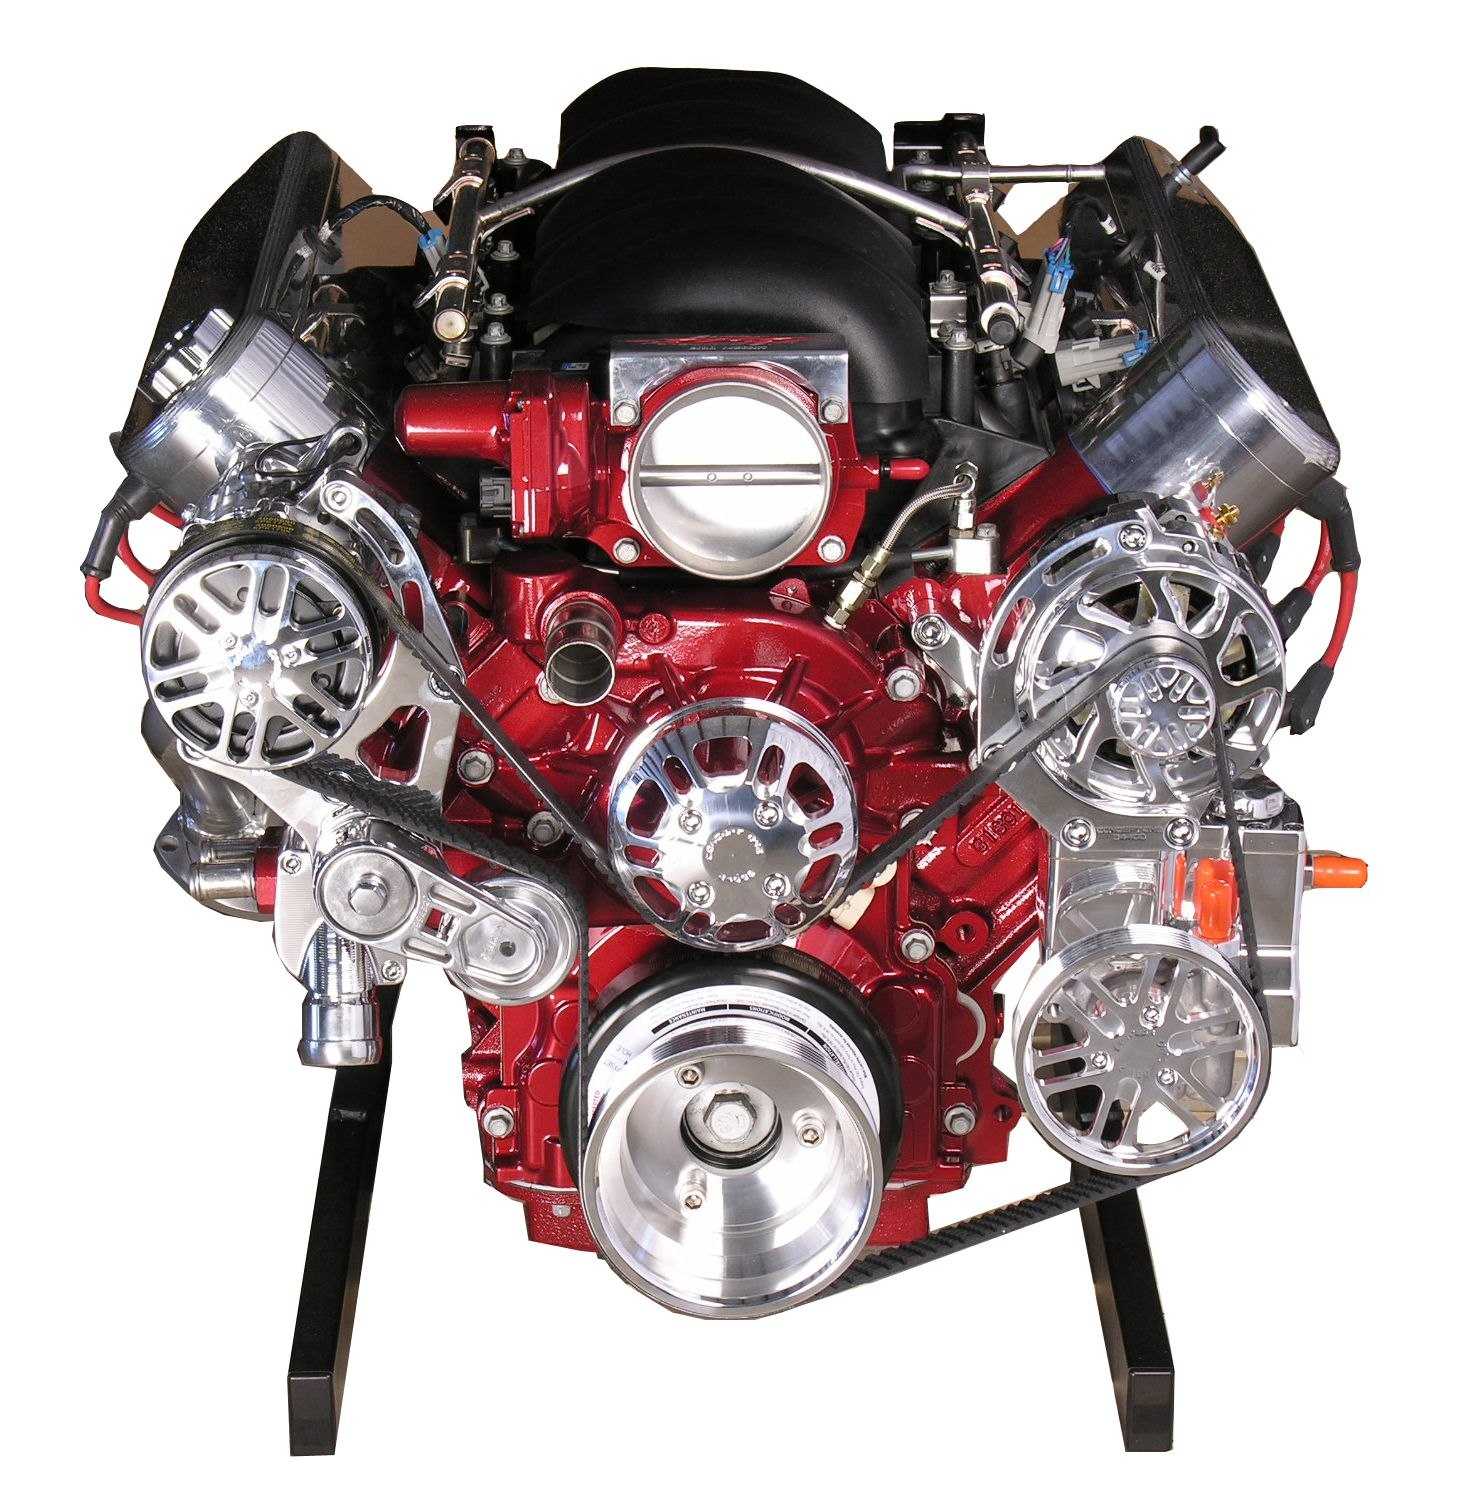 LS3 Engine with 4L80E Transmission 480 HP Deep Red Paint – Ls3 Engine Harness Wiring -diagram